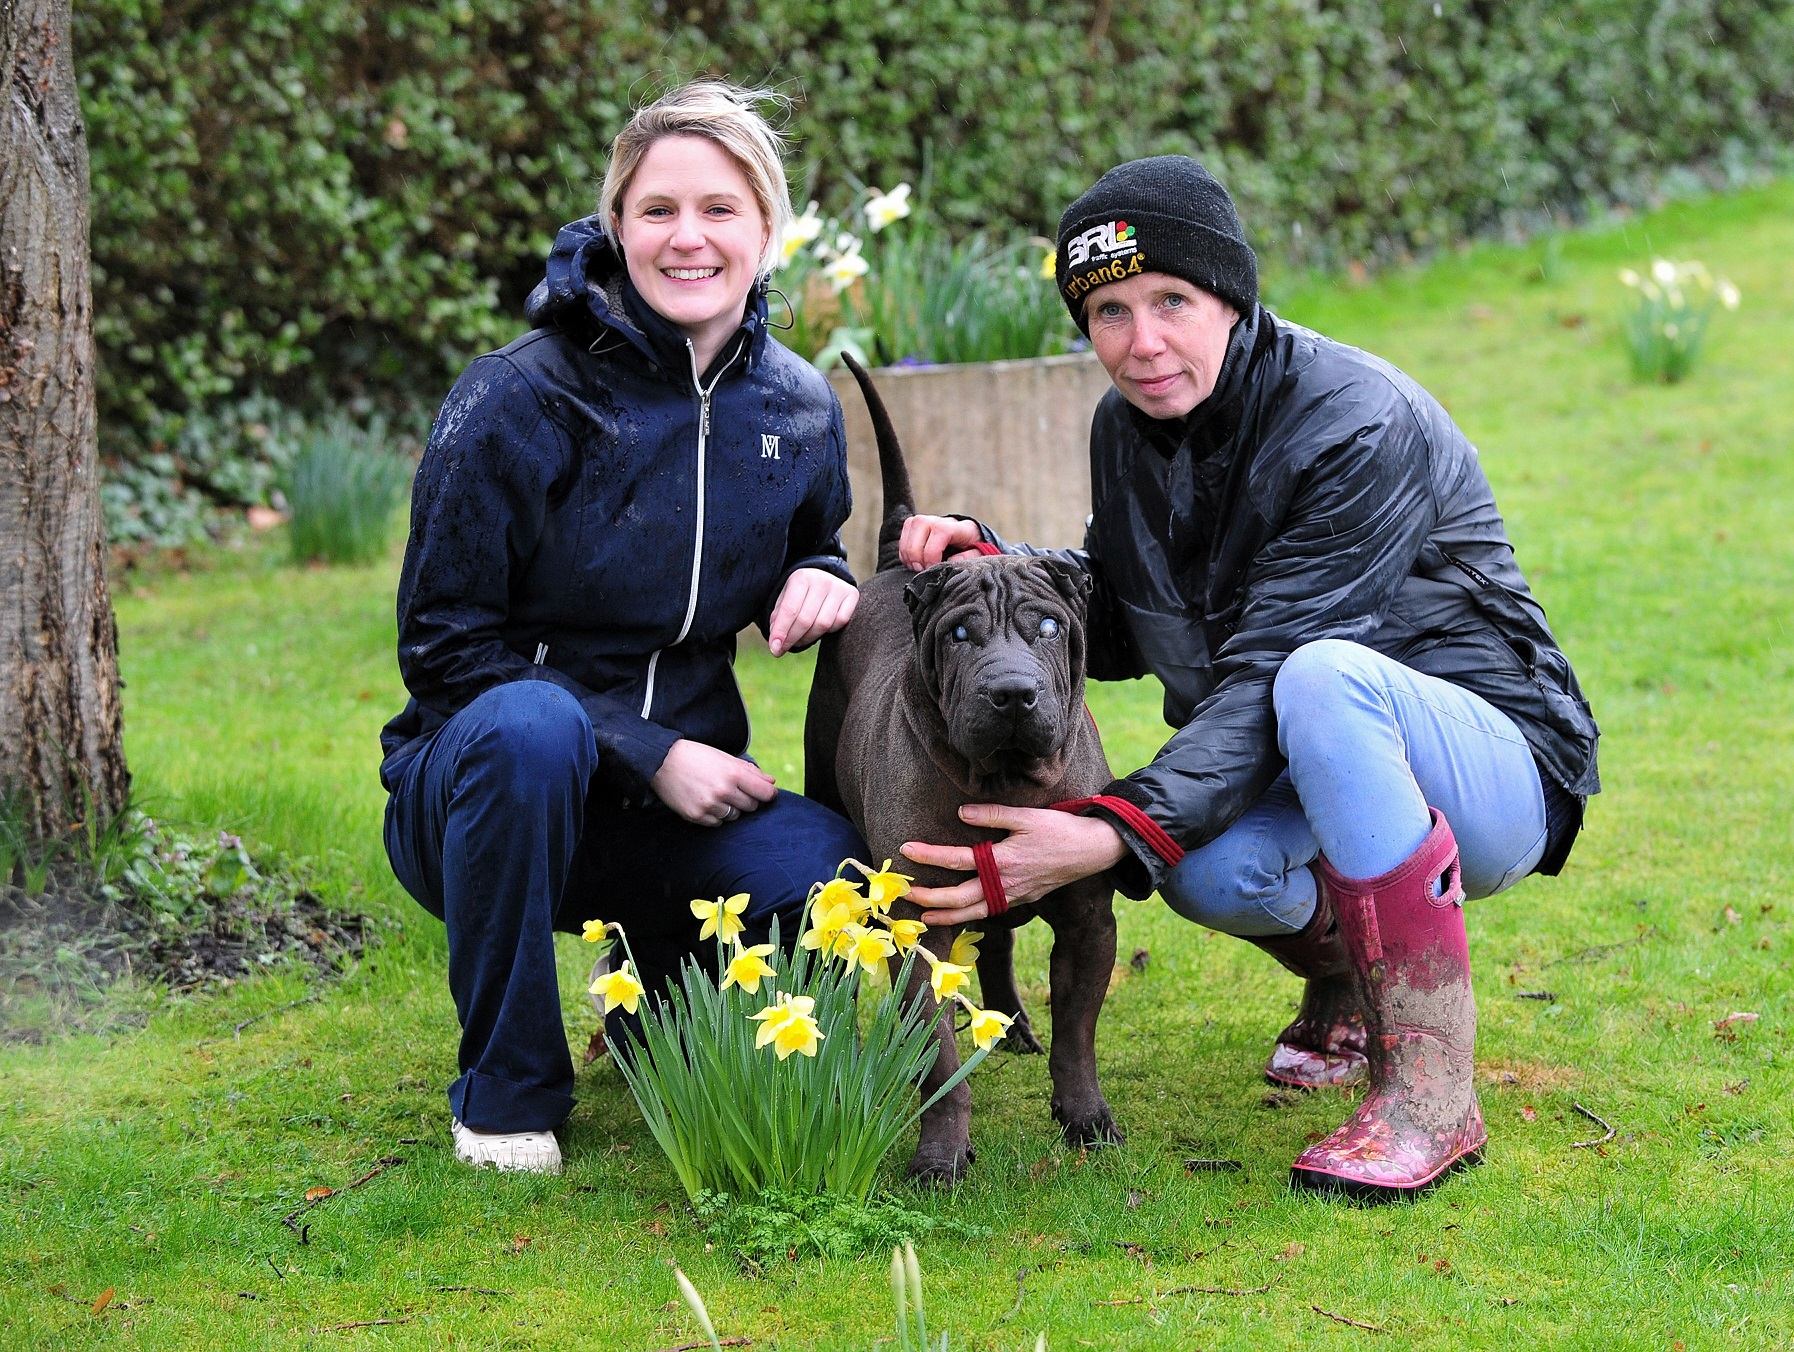 RVN Rachael McCooey (Left) with Berni Calladine from Wonky Pets, with Reggie, the blind Shar Pei, who has been treated at the Severn Vets